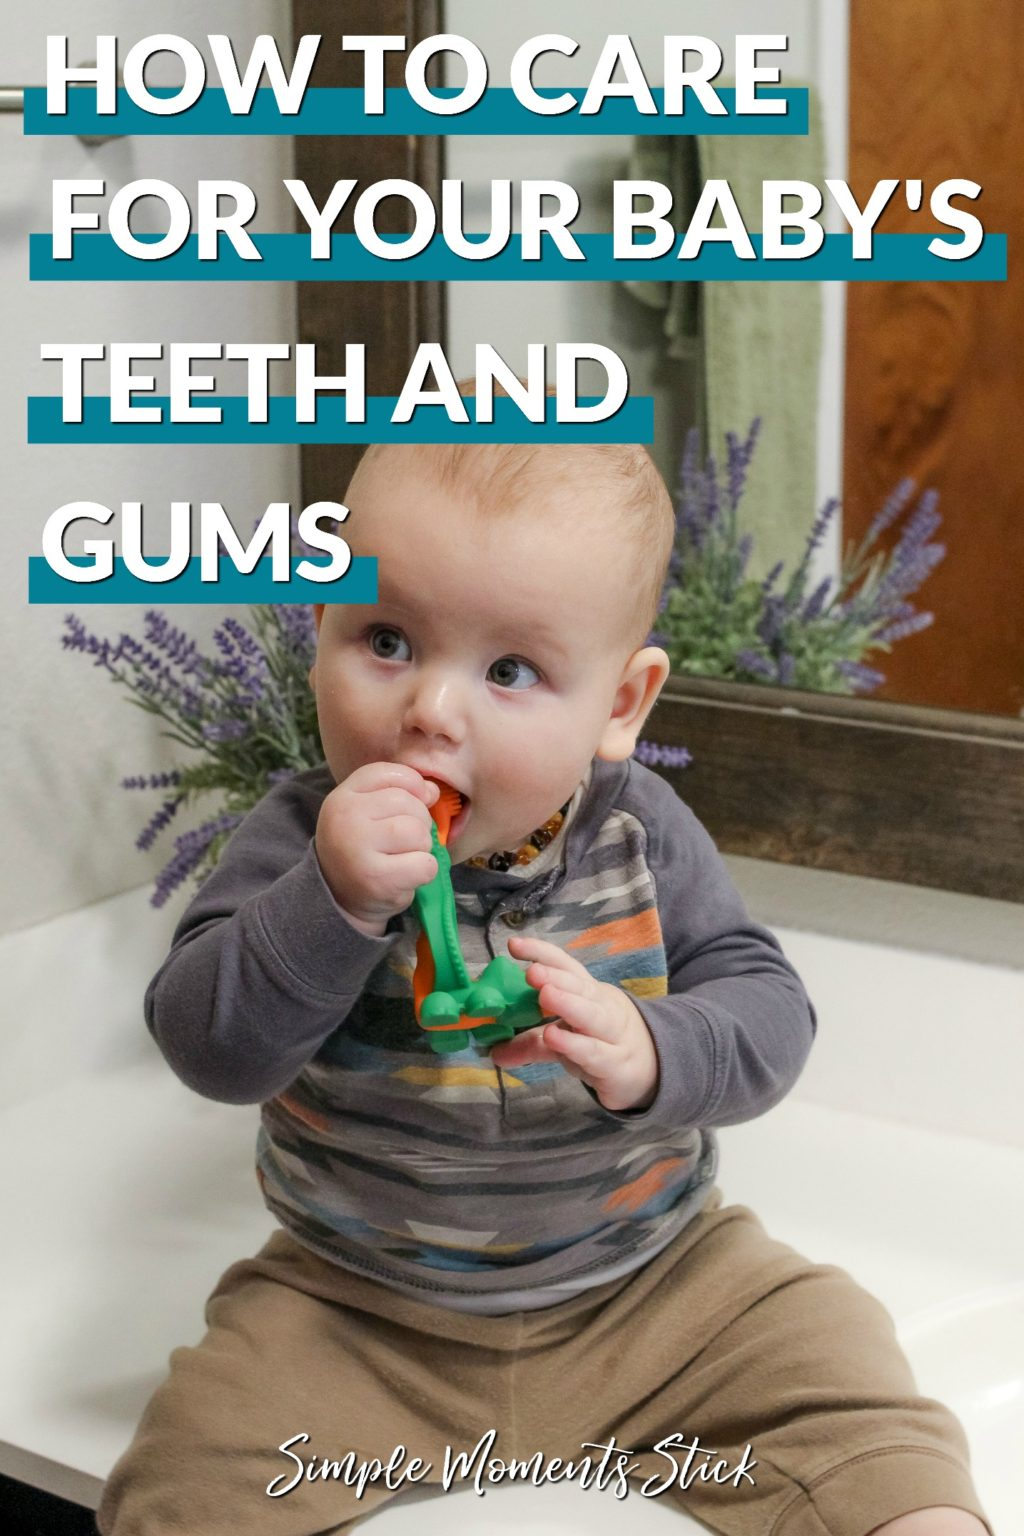 How to Care for Your Baby's Teeth and Gums. When Did You Start Brushing Your Baby's Teeth. Best Baby Toothbrush